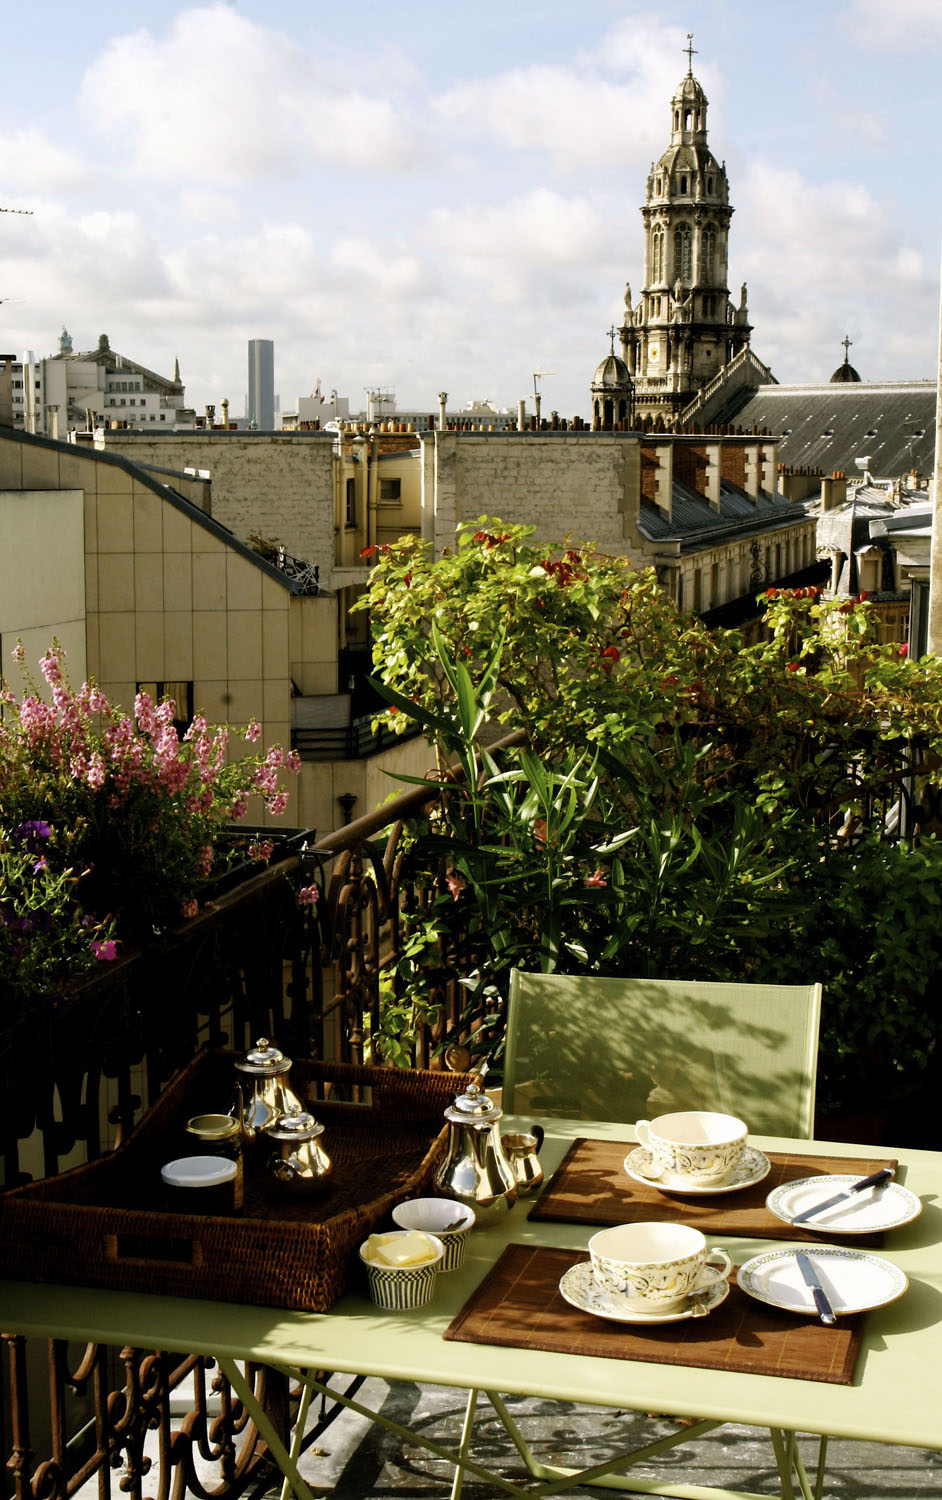 Breakfast on the terrace